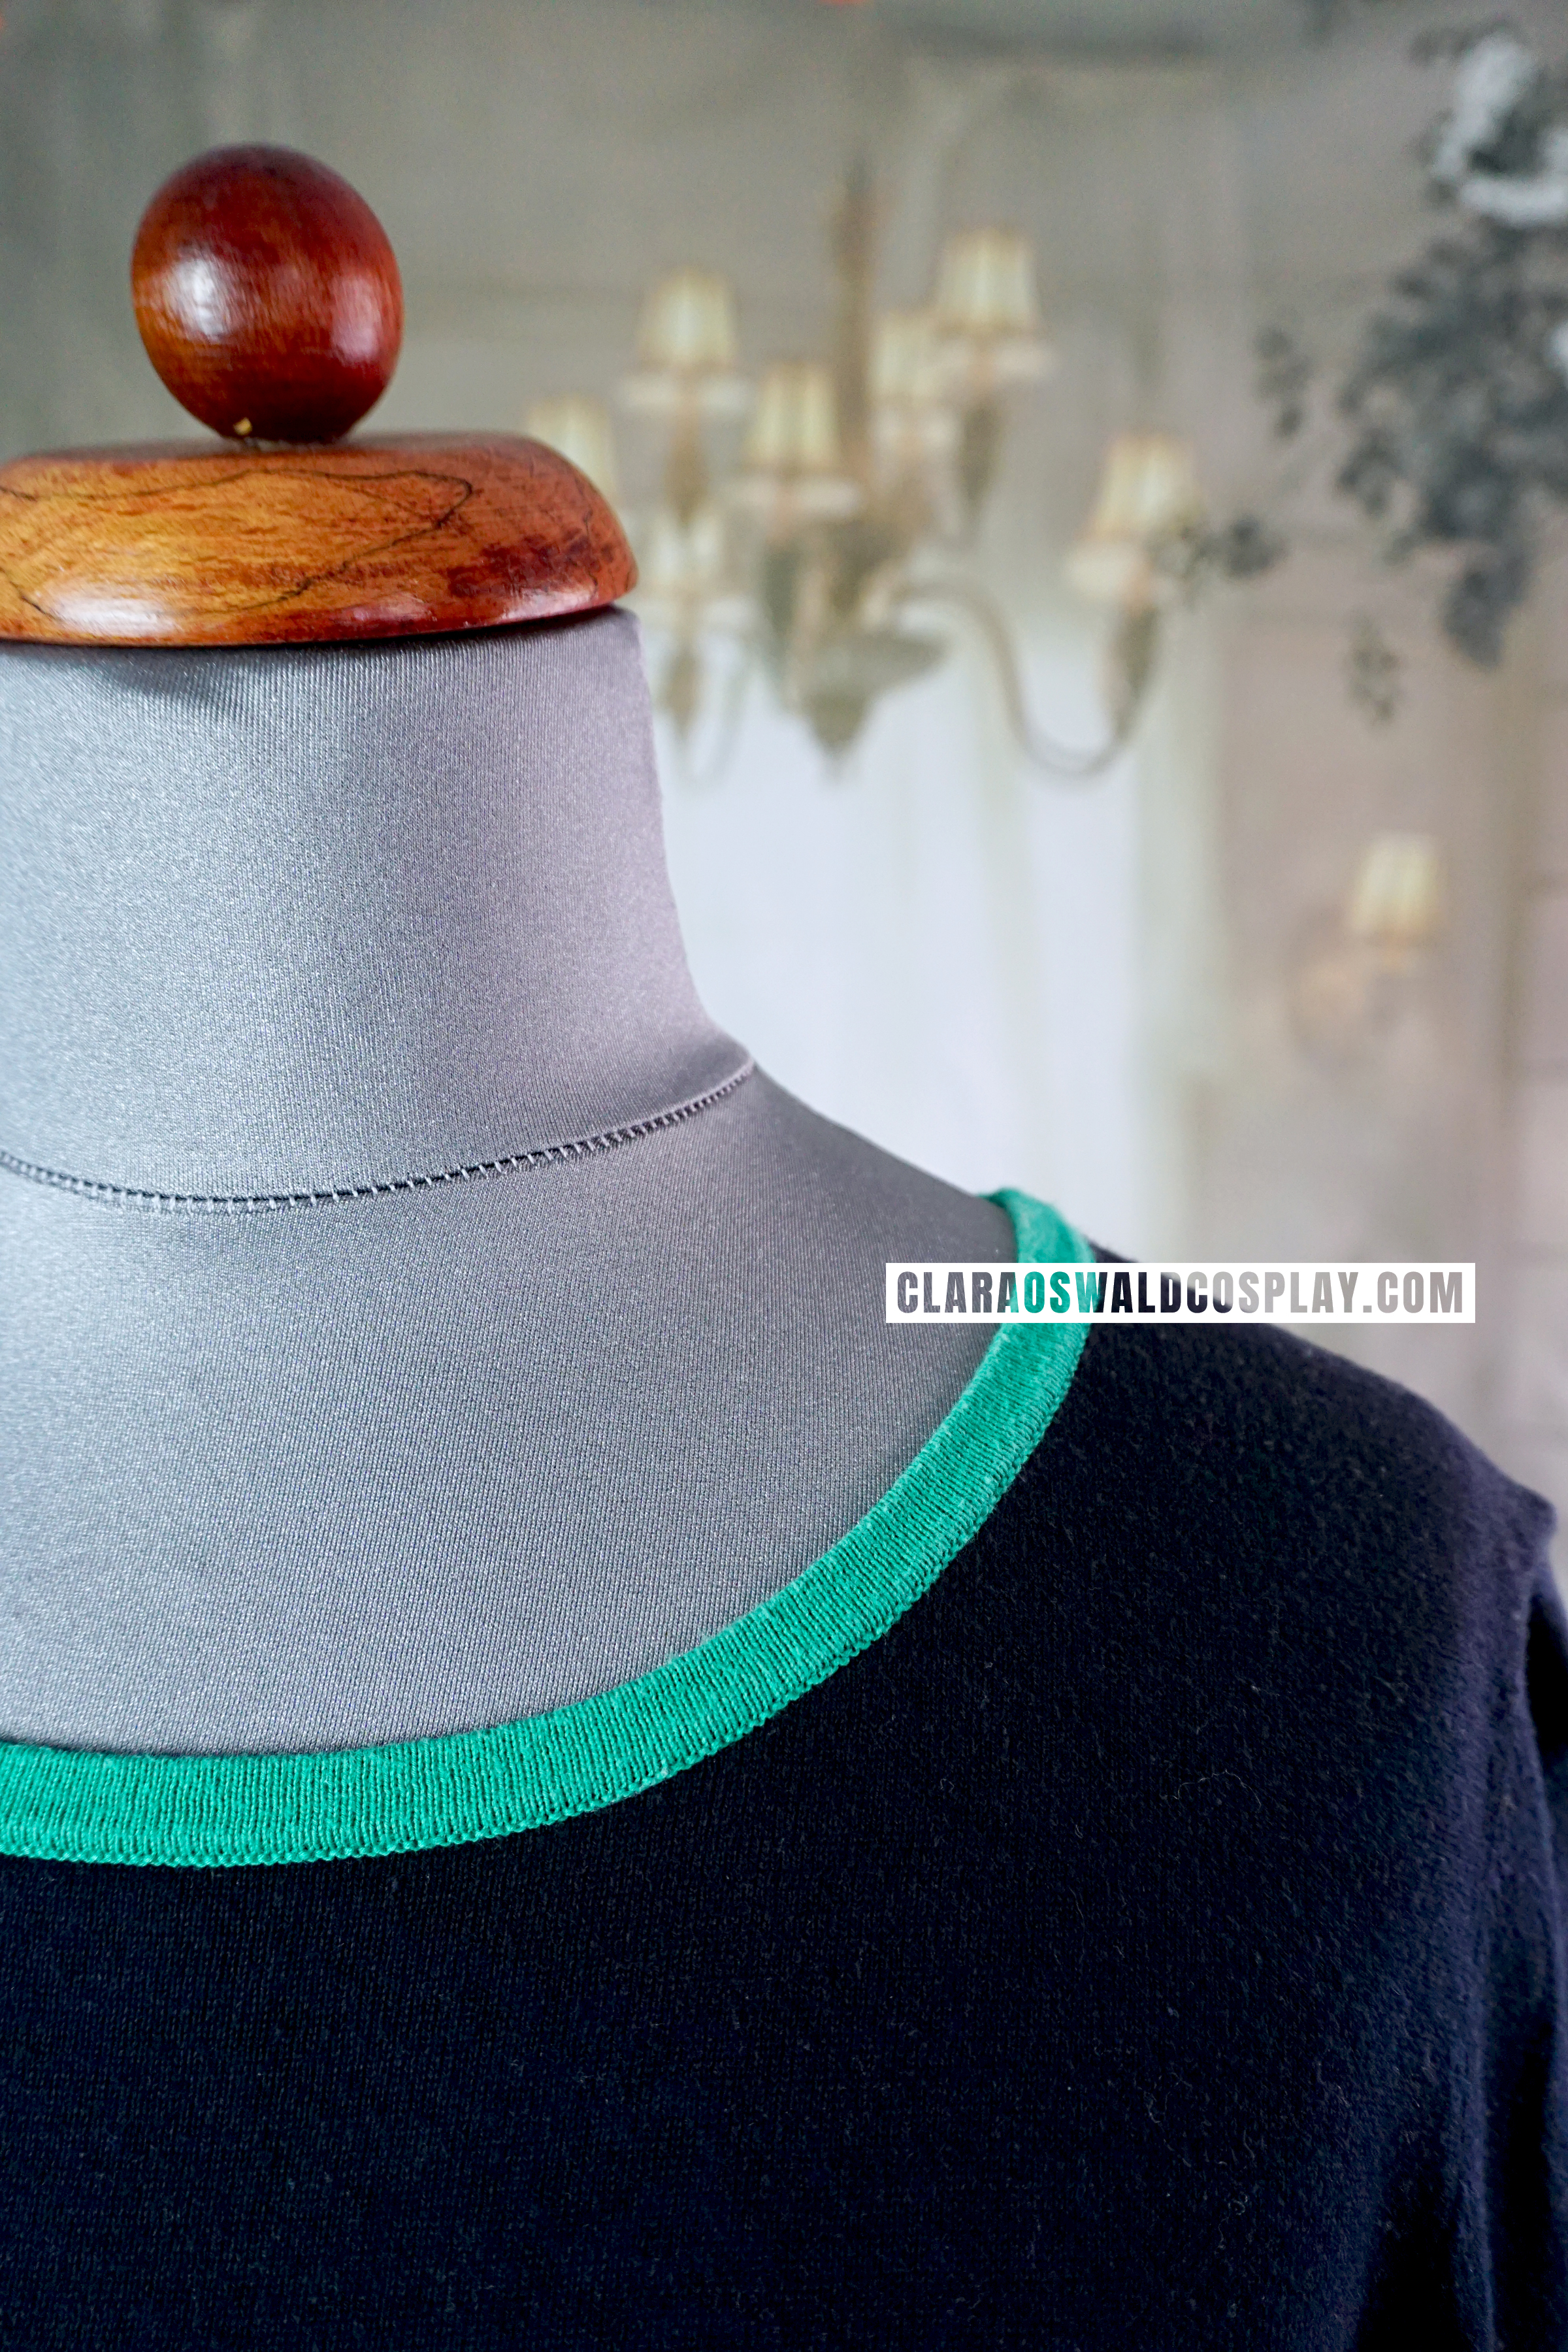 Close-up of the green collar.